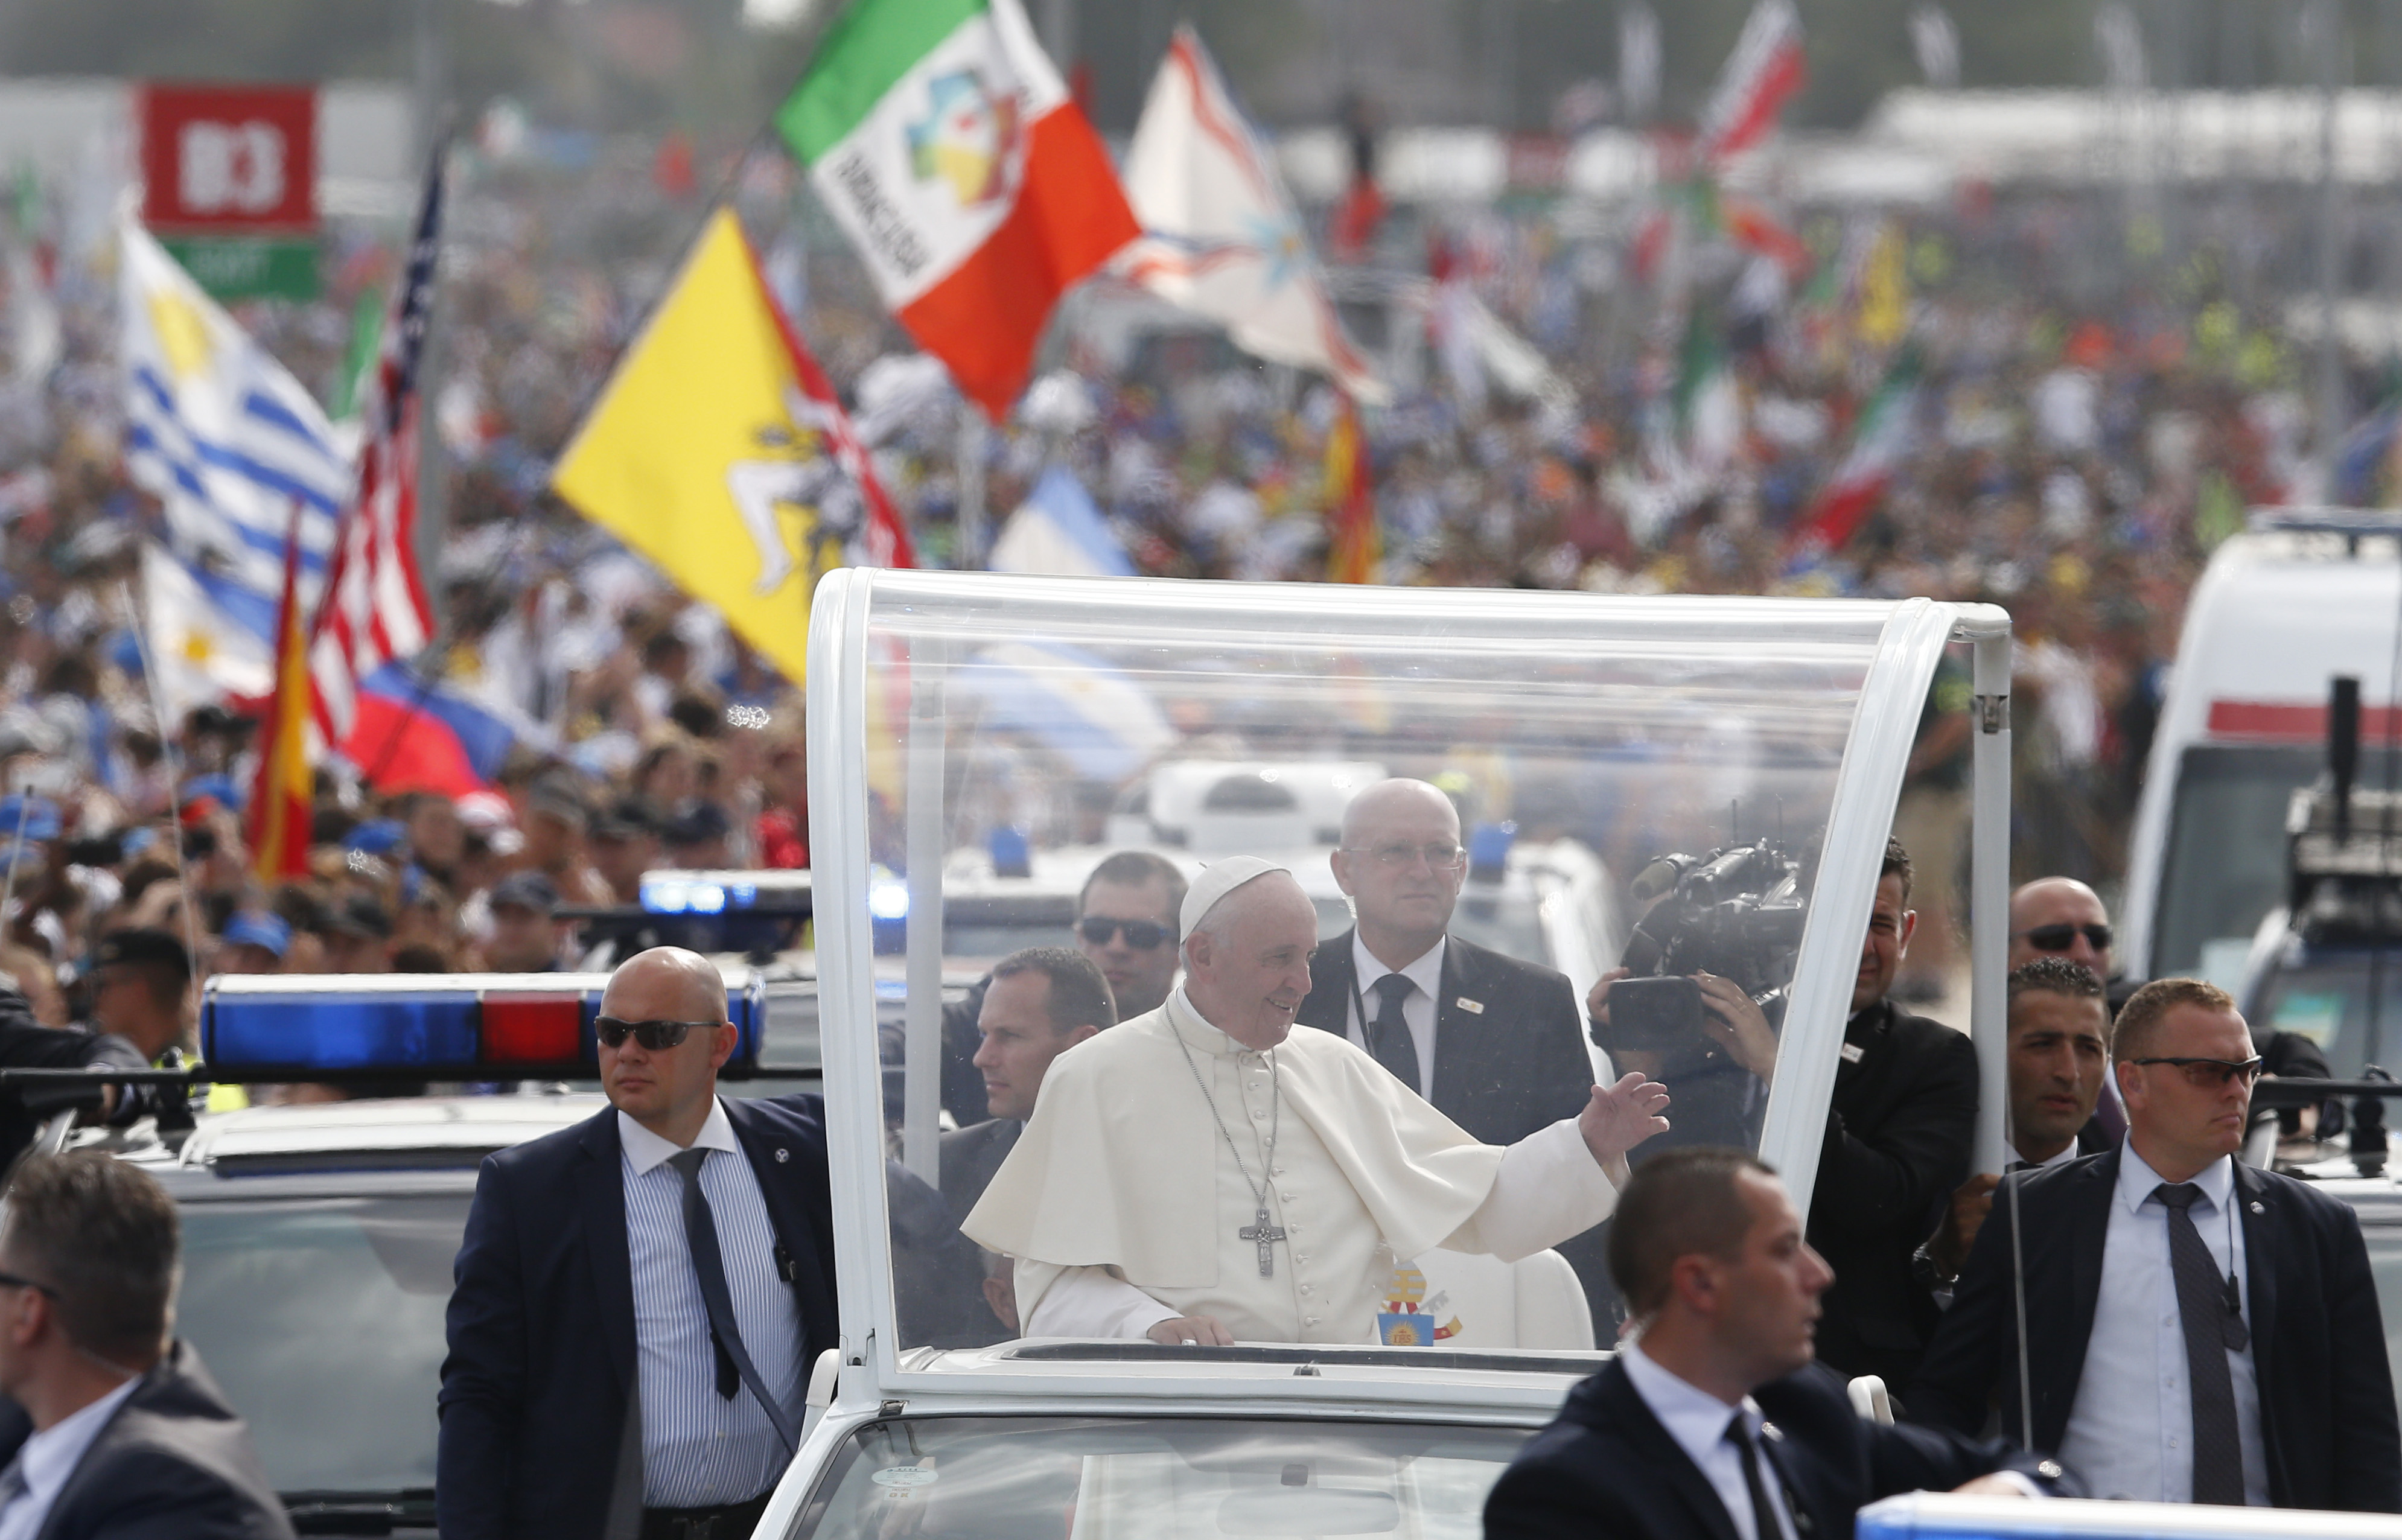 Pope arrives at closing Mass